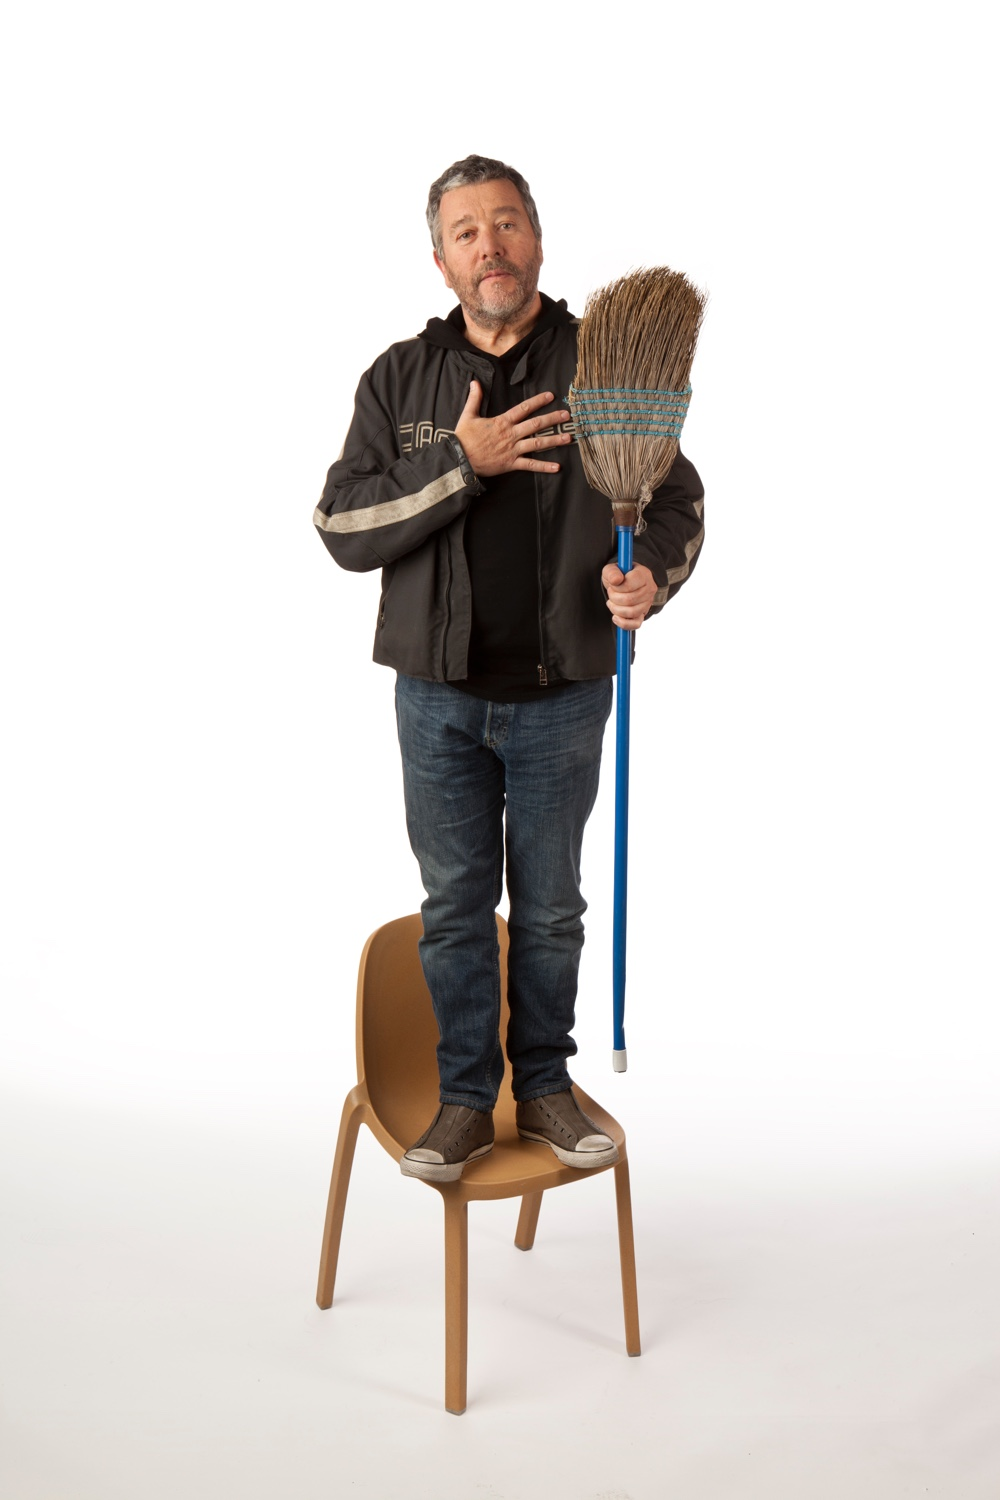 starck design icons (and one vain attempt) - view in gallery philippe starck and the broom chair image courtesy ofemeco